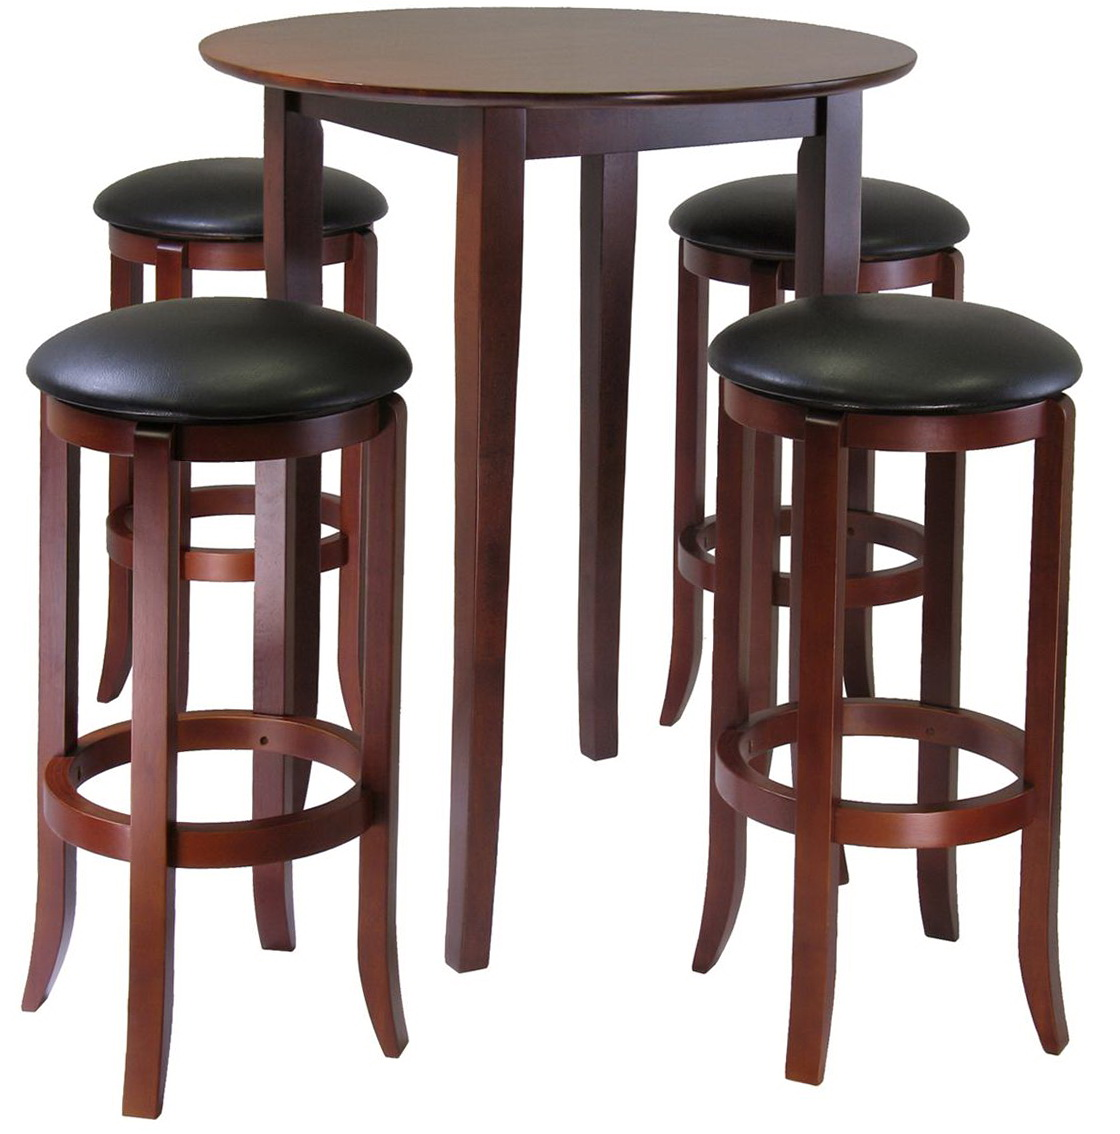 Round Pub Table And Chairs